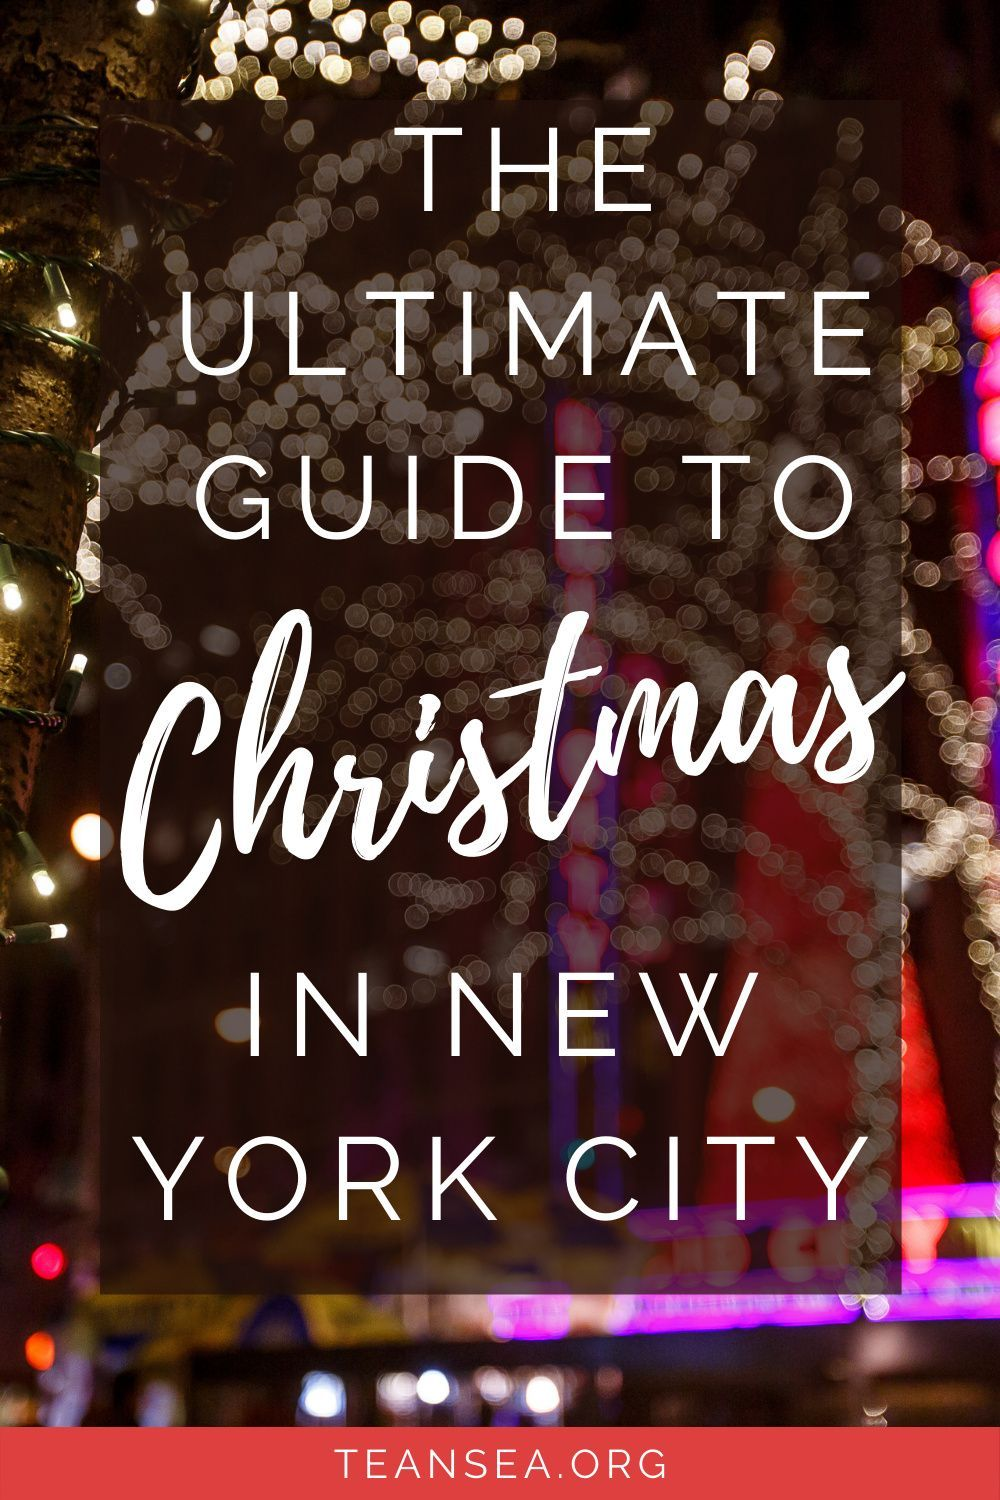 New York City is full of fun things to do for Christmas, check out this guide for everything you don't want to miss! #nyc #christmasinnyc #newyorkcitychristmas | things to do in new york for christmas | Christmas in new york city guide | NYC christmas | things to do nyc christmas | NYC Christmas guide | Christmas travel guide | Holiday travel guide | How to experience Christmas in NYC